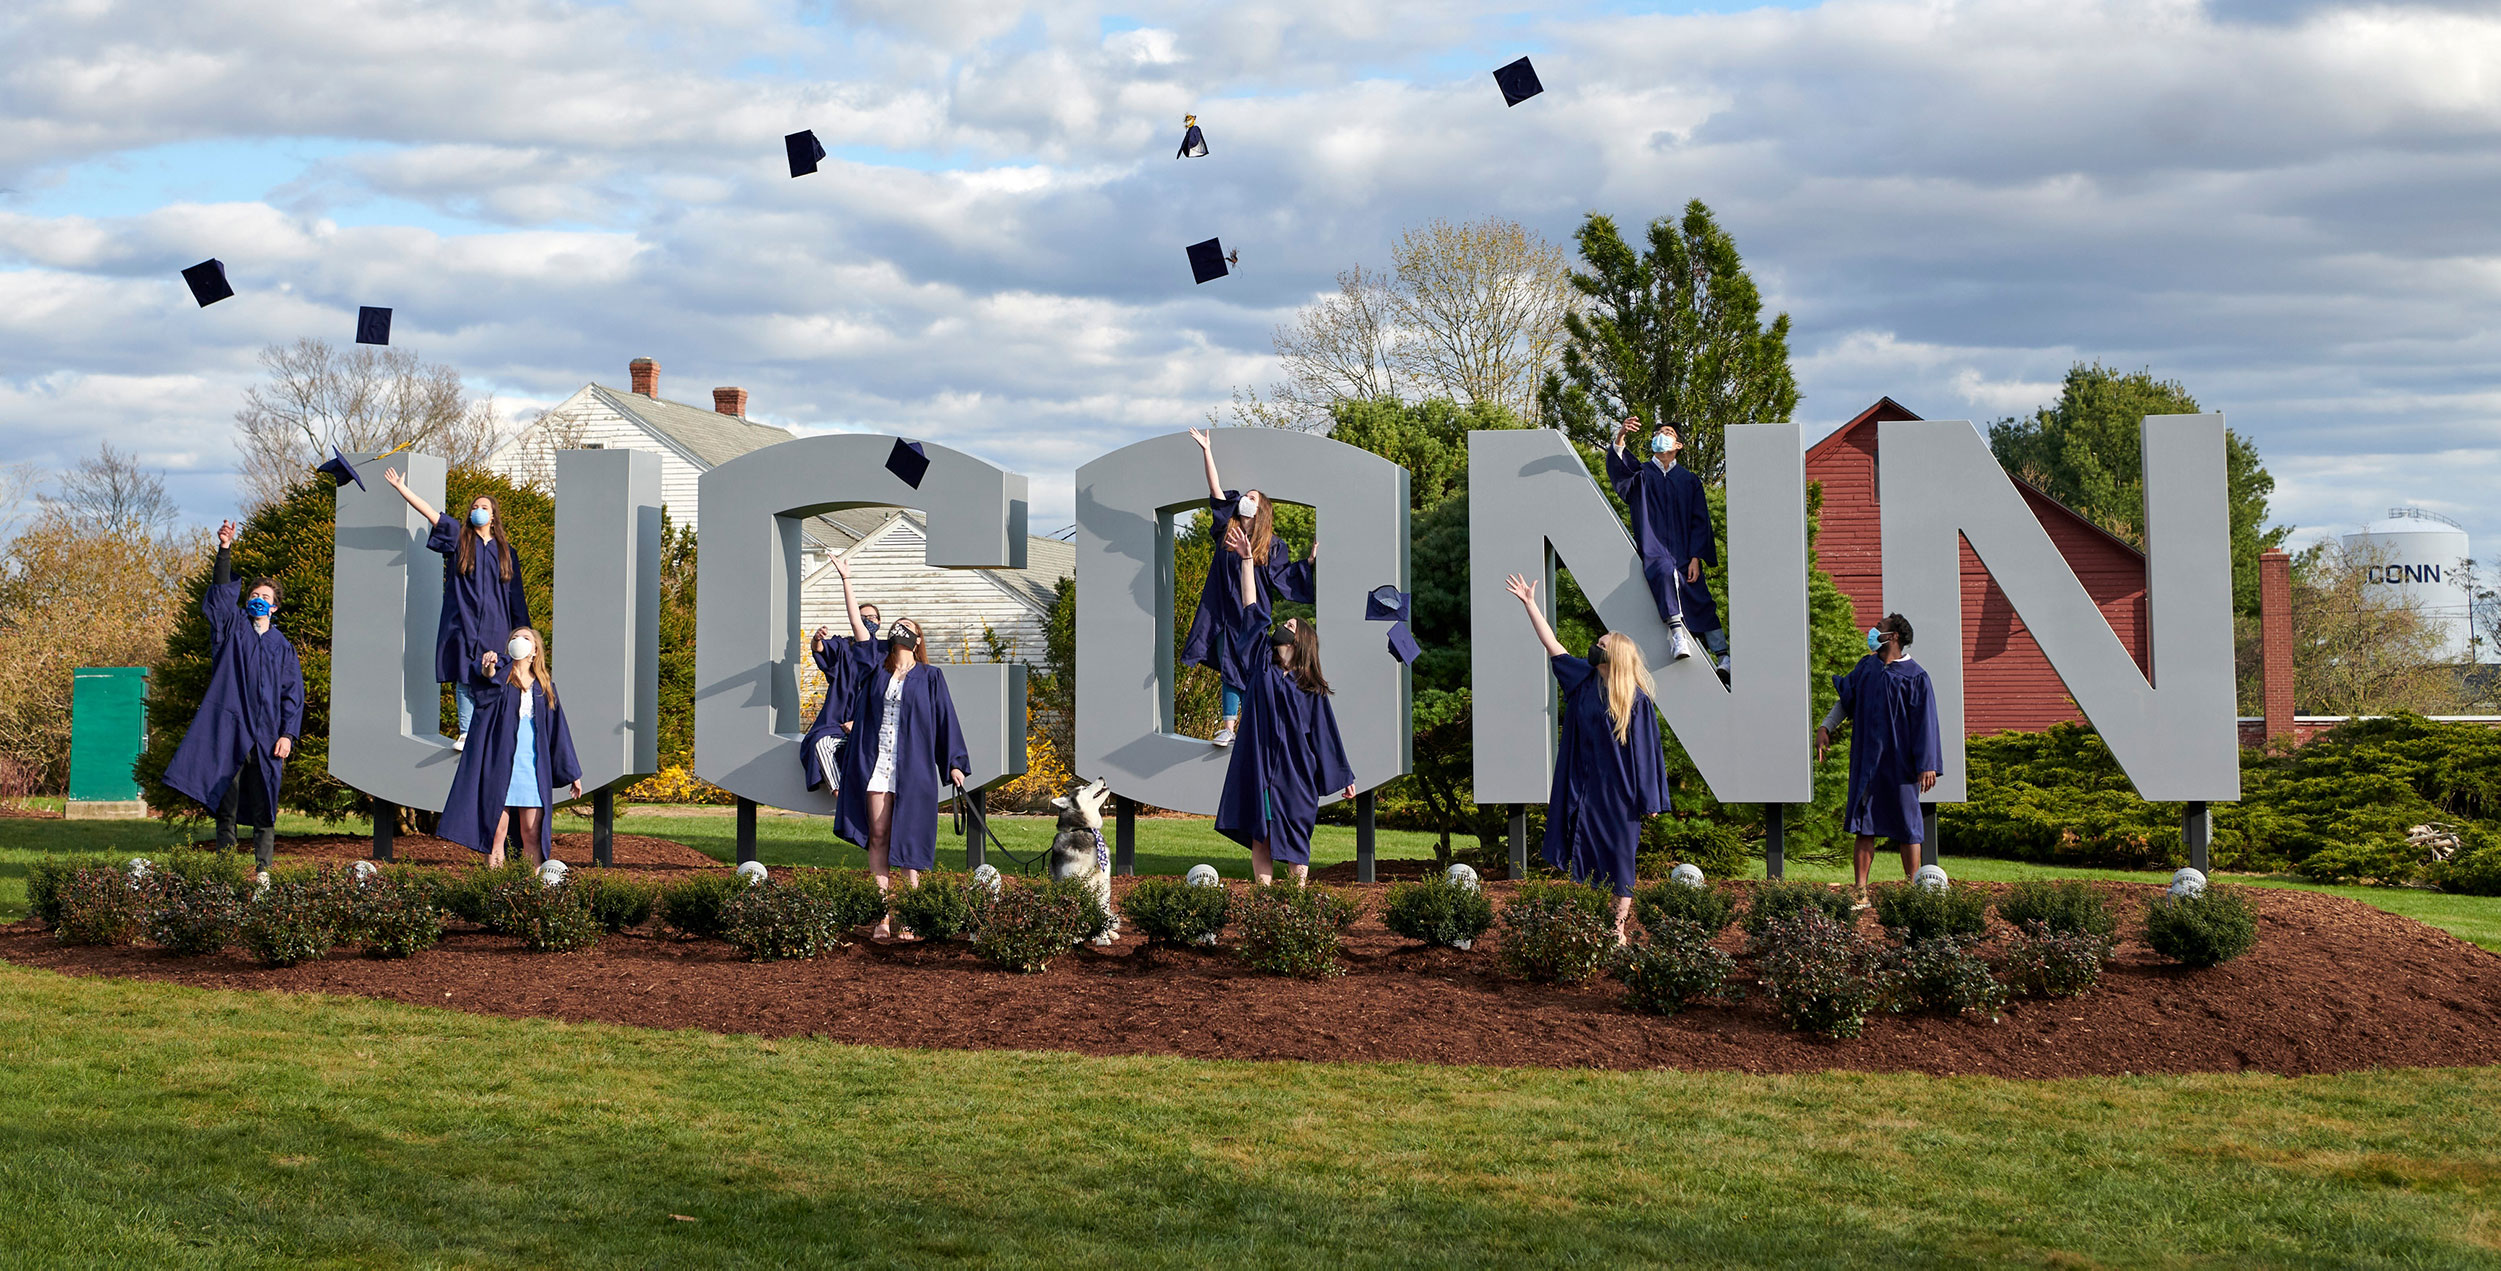 Students in commencement regalia throw their caps joyfully in front of the UConn Storrs gateway sign